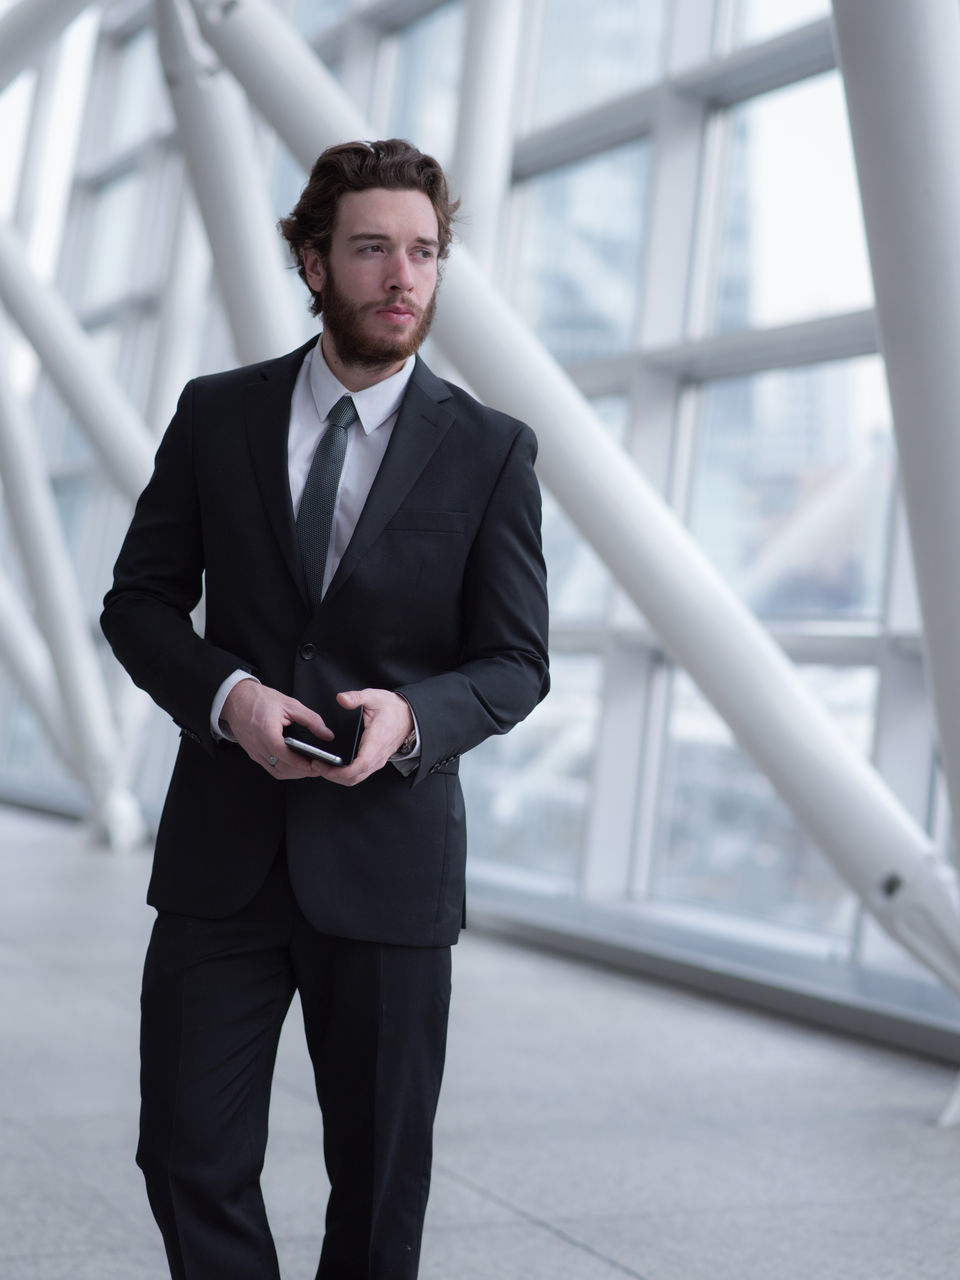 Businessman Looking Away While Standing In Building